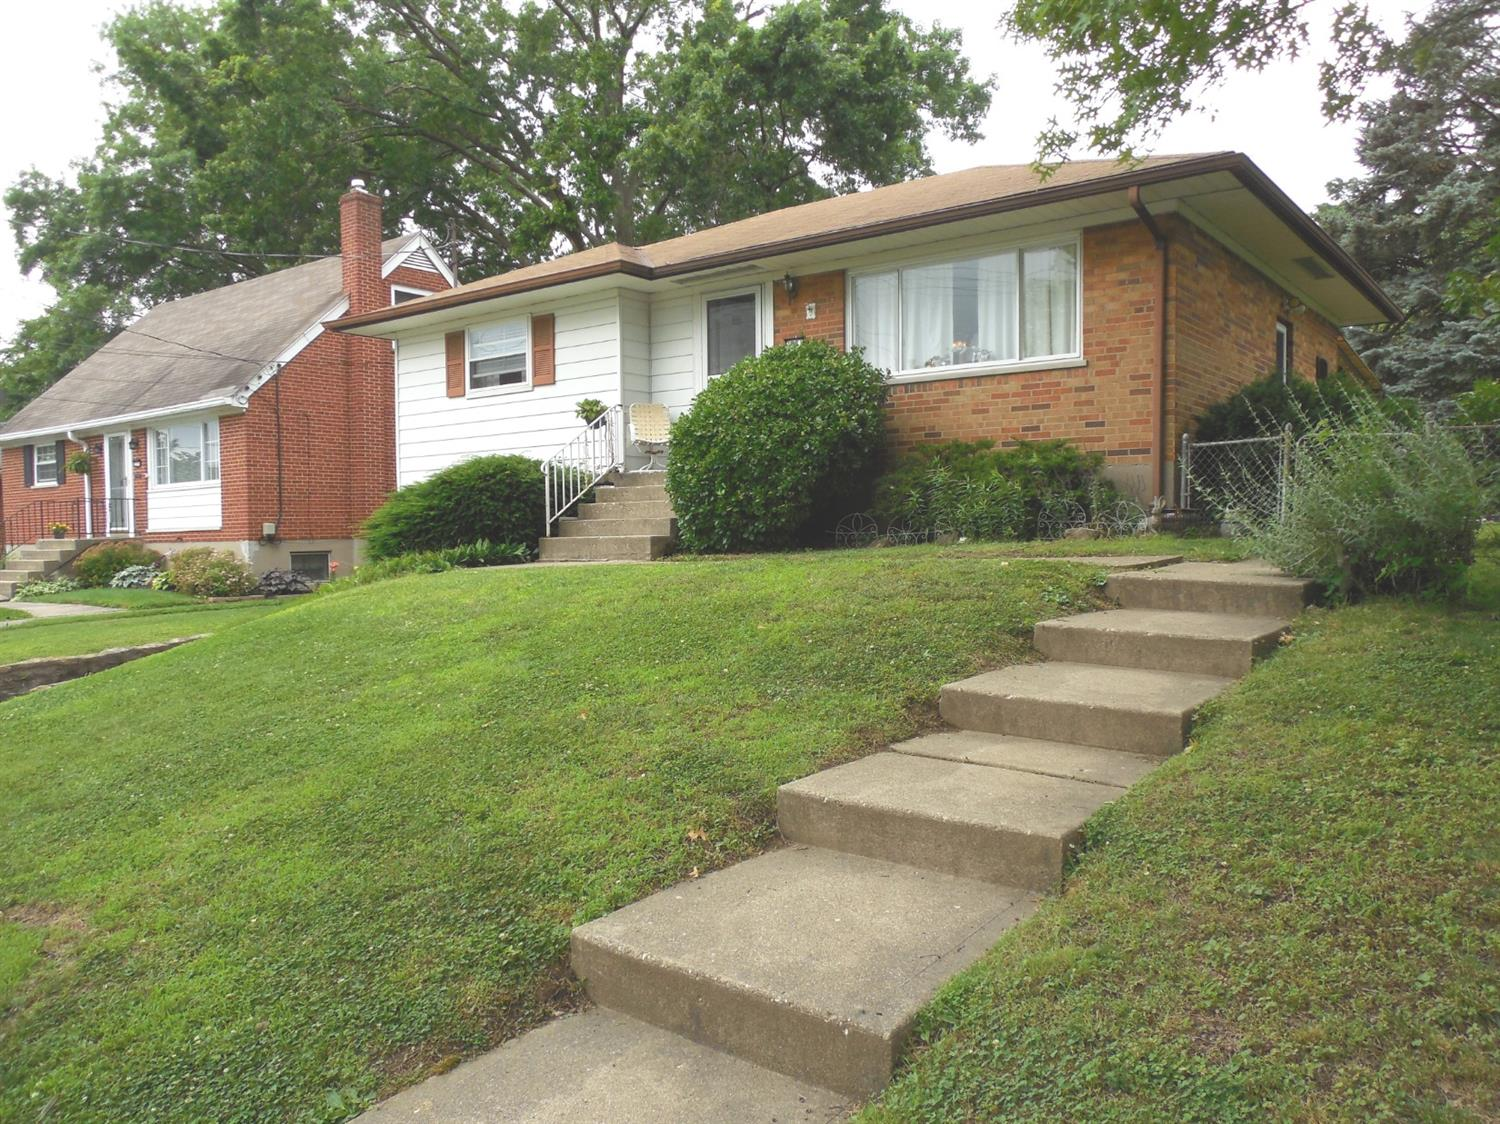 Photo 2 for 3281 Greenway Ave Bridgetown, OH 45248